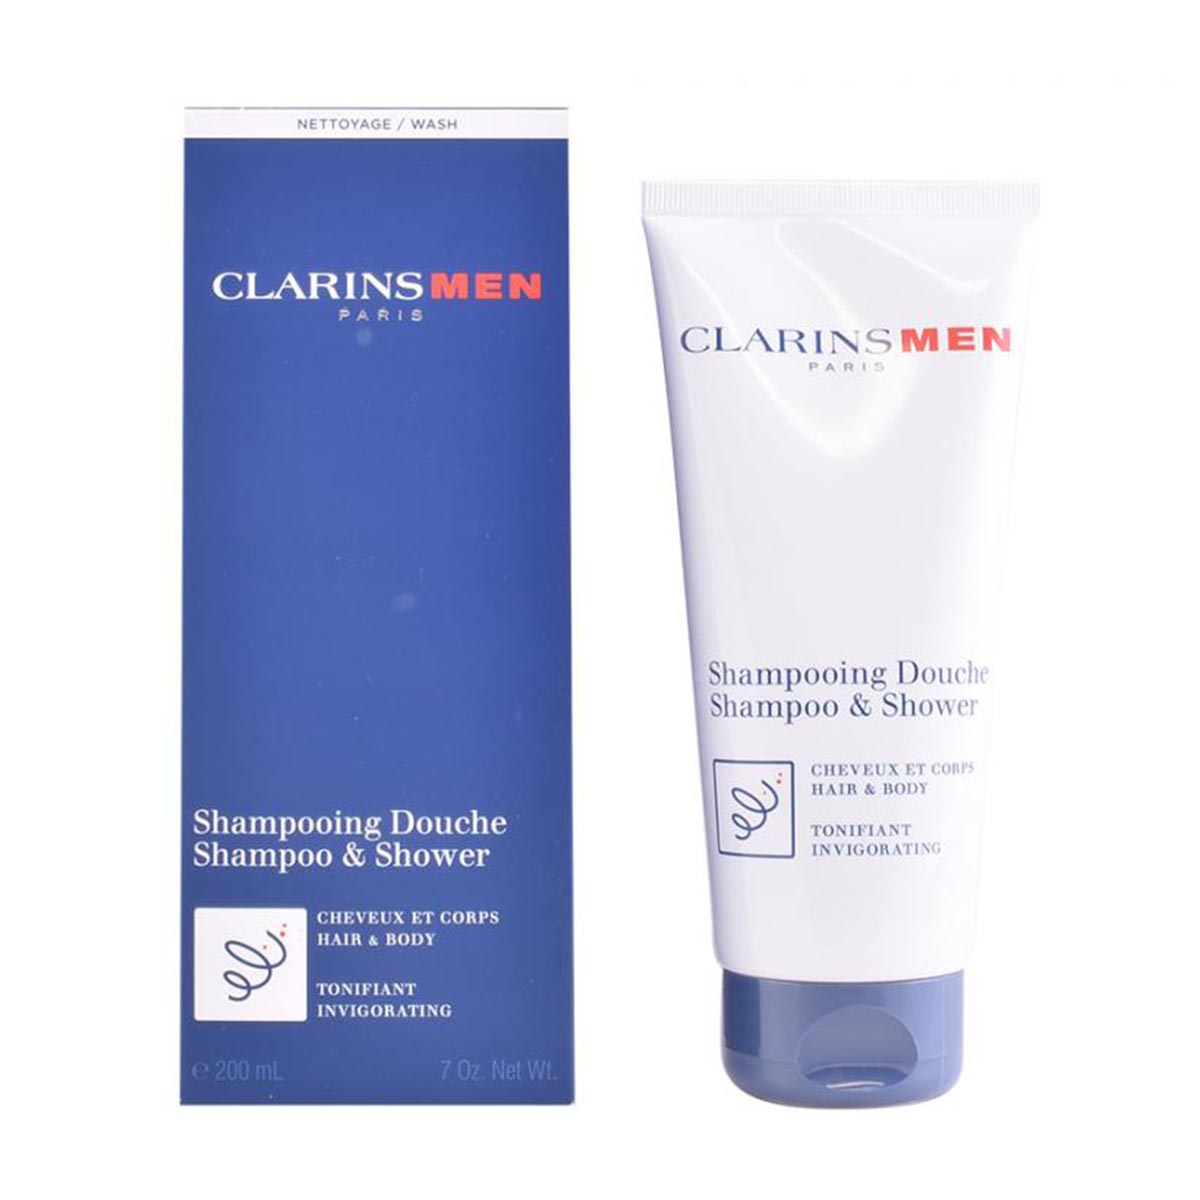 Clarins men shampo shower 200ml